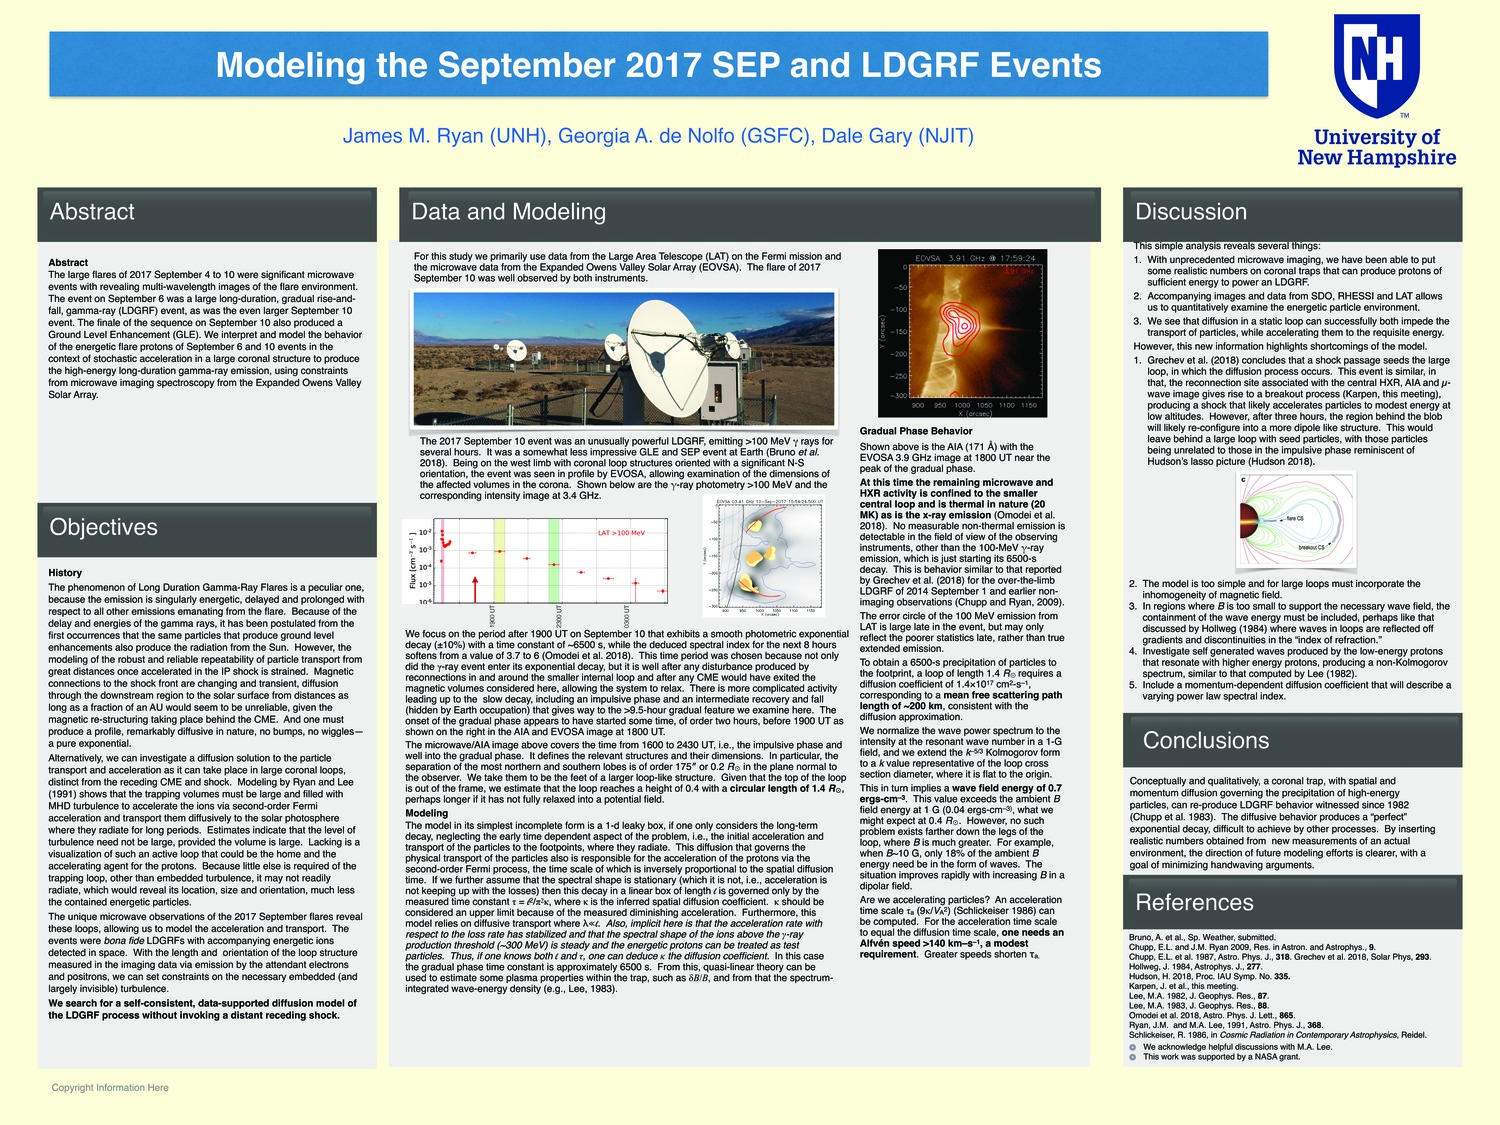 Modeling The September 2017 Sep And Ldgrf Events by jimunhryan